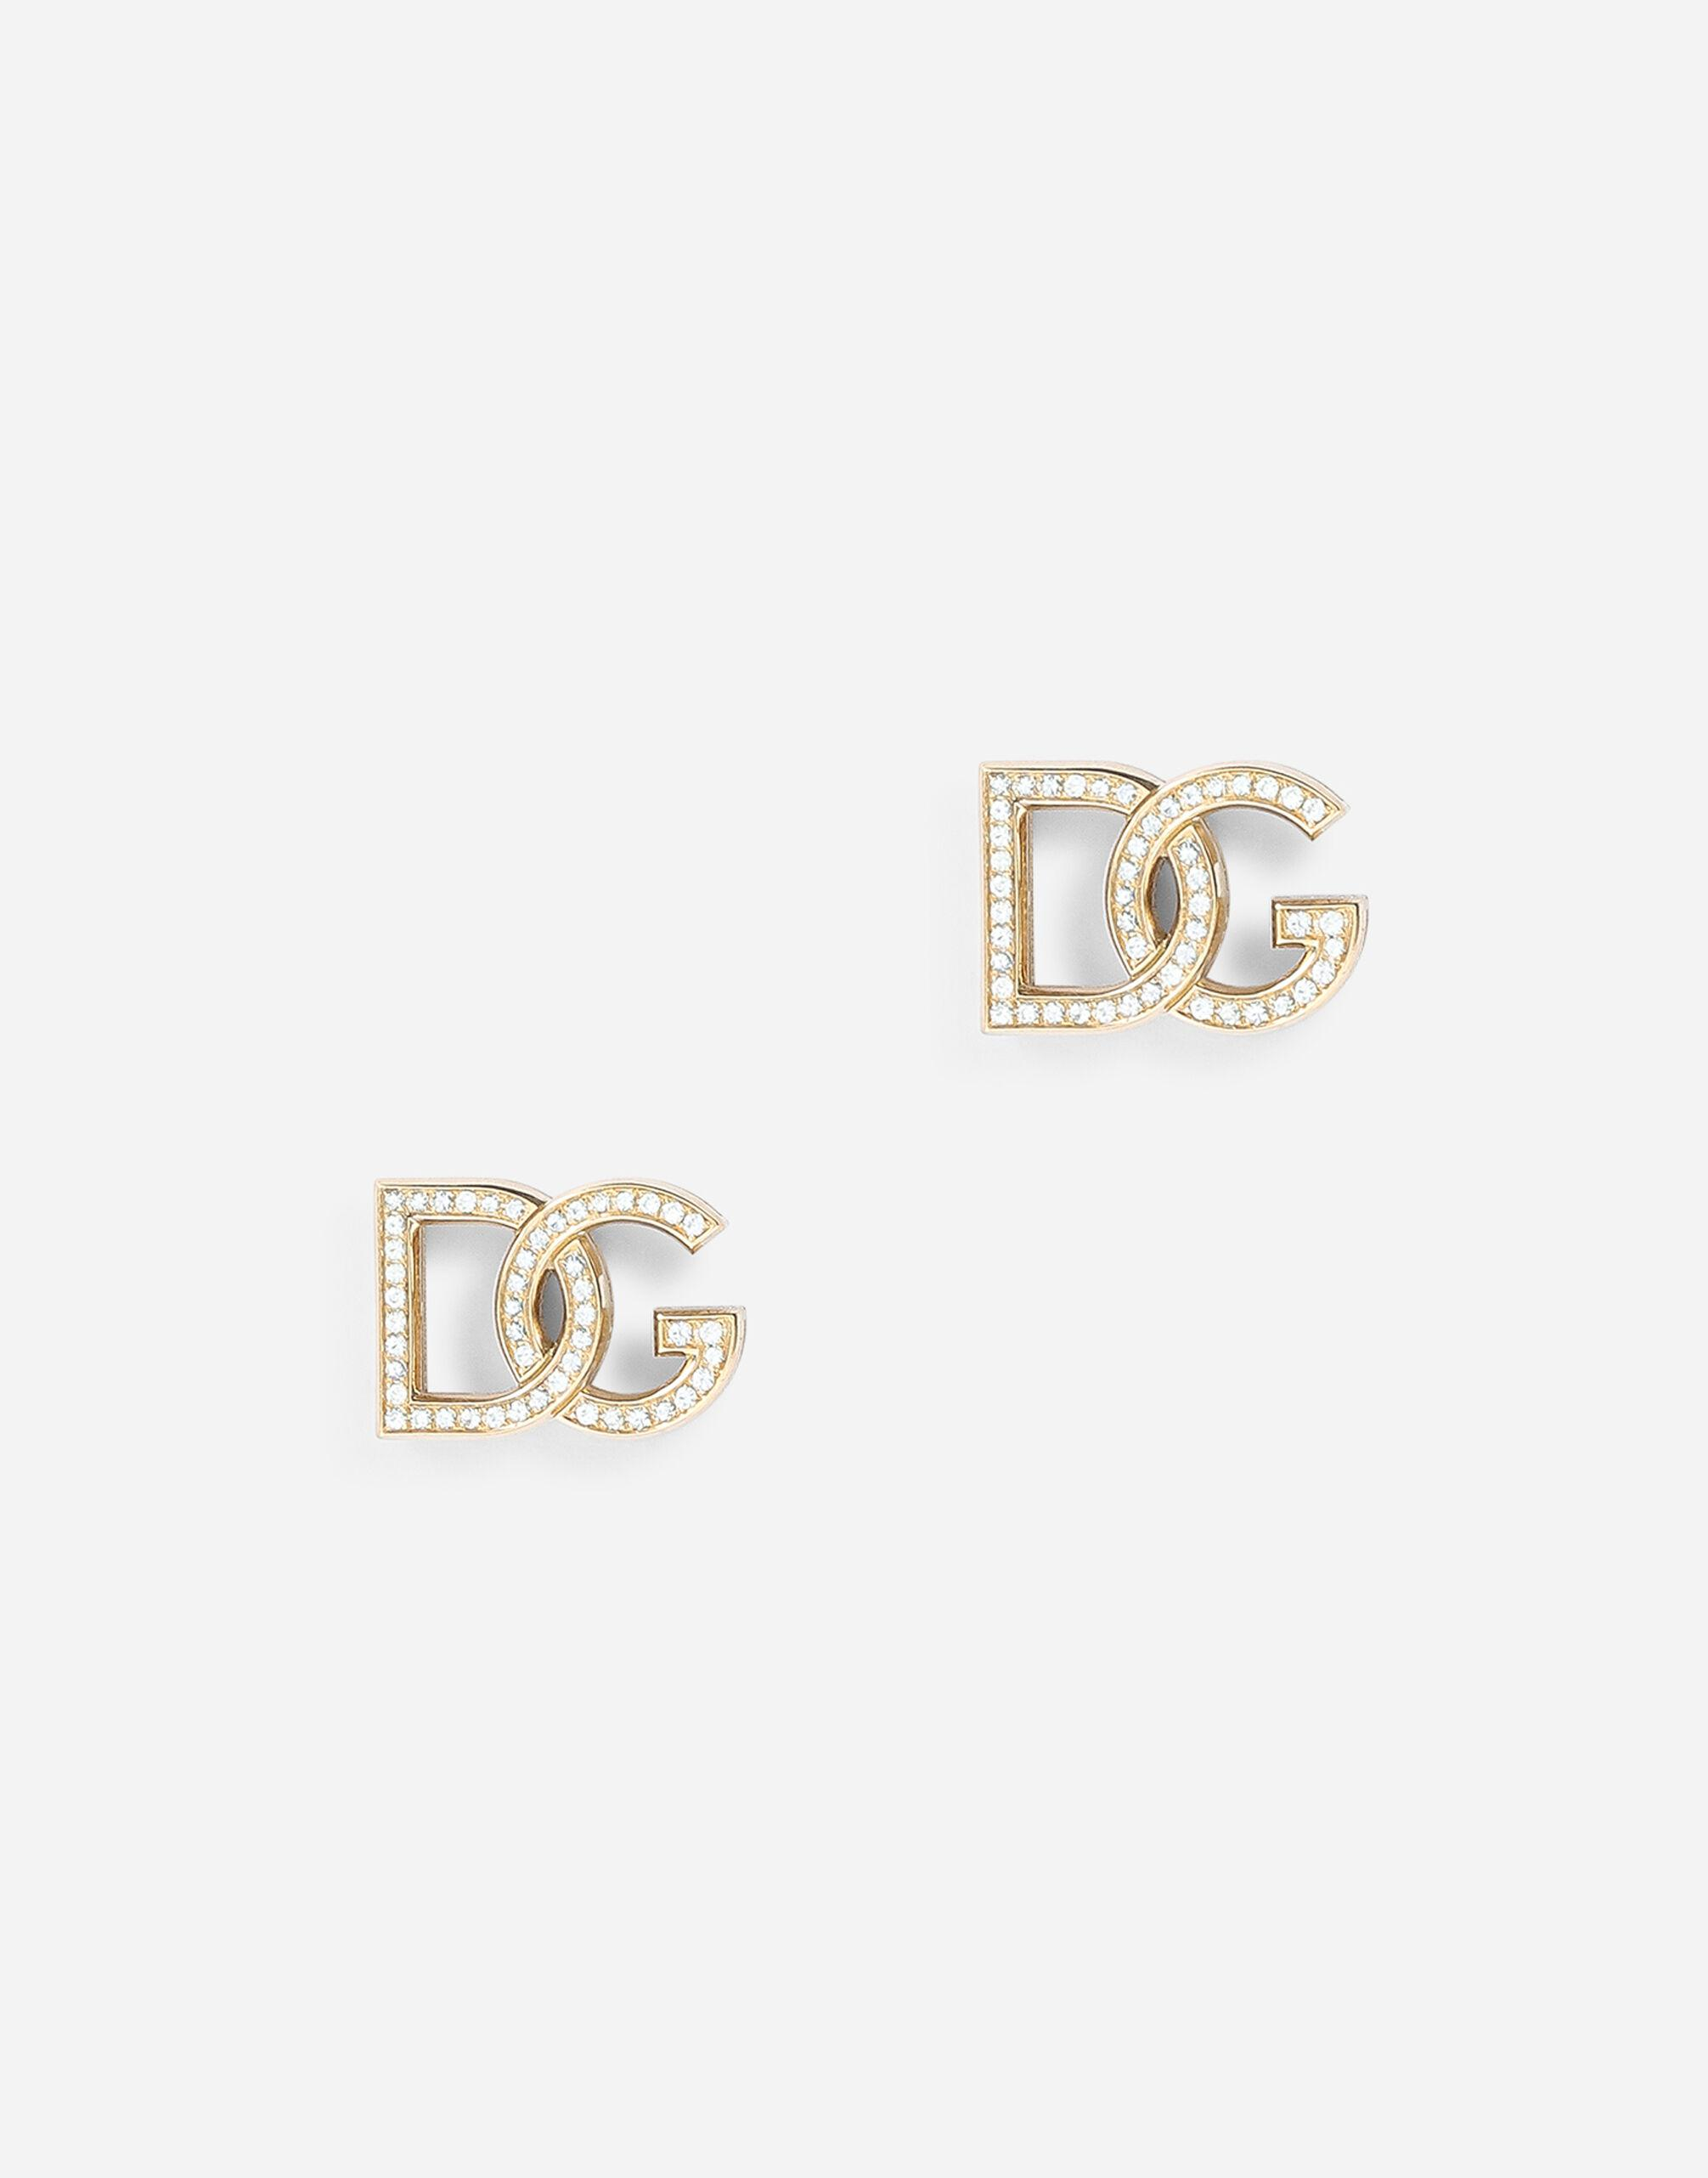 Logo earrings in yellow 18kt gold with colorless sapphires